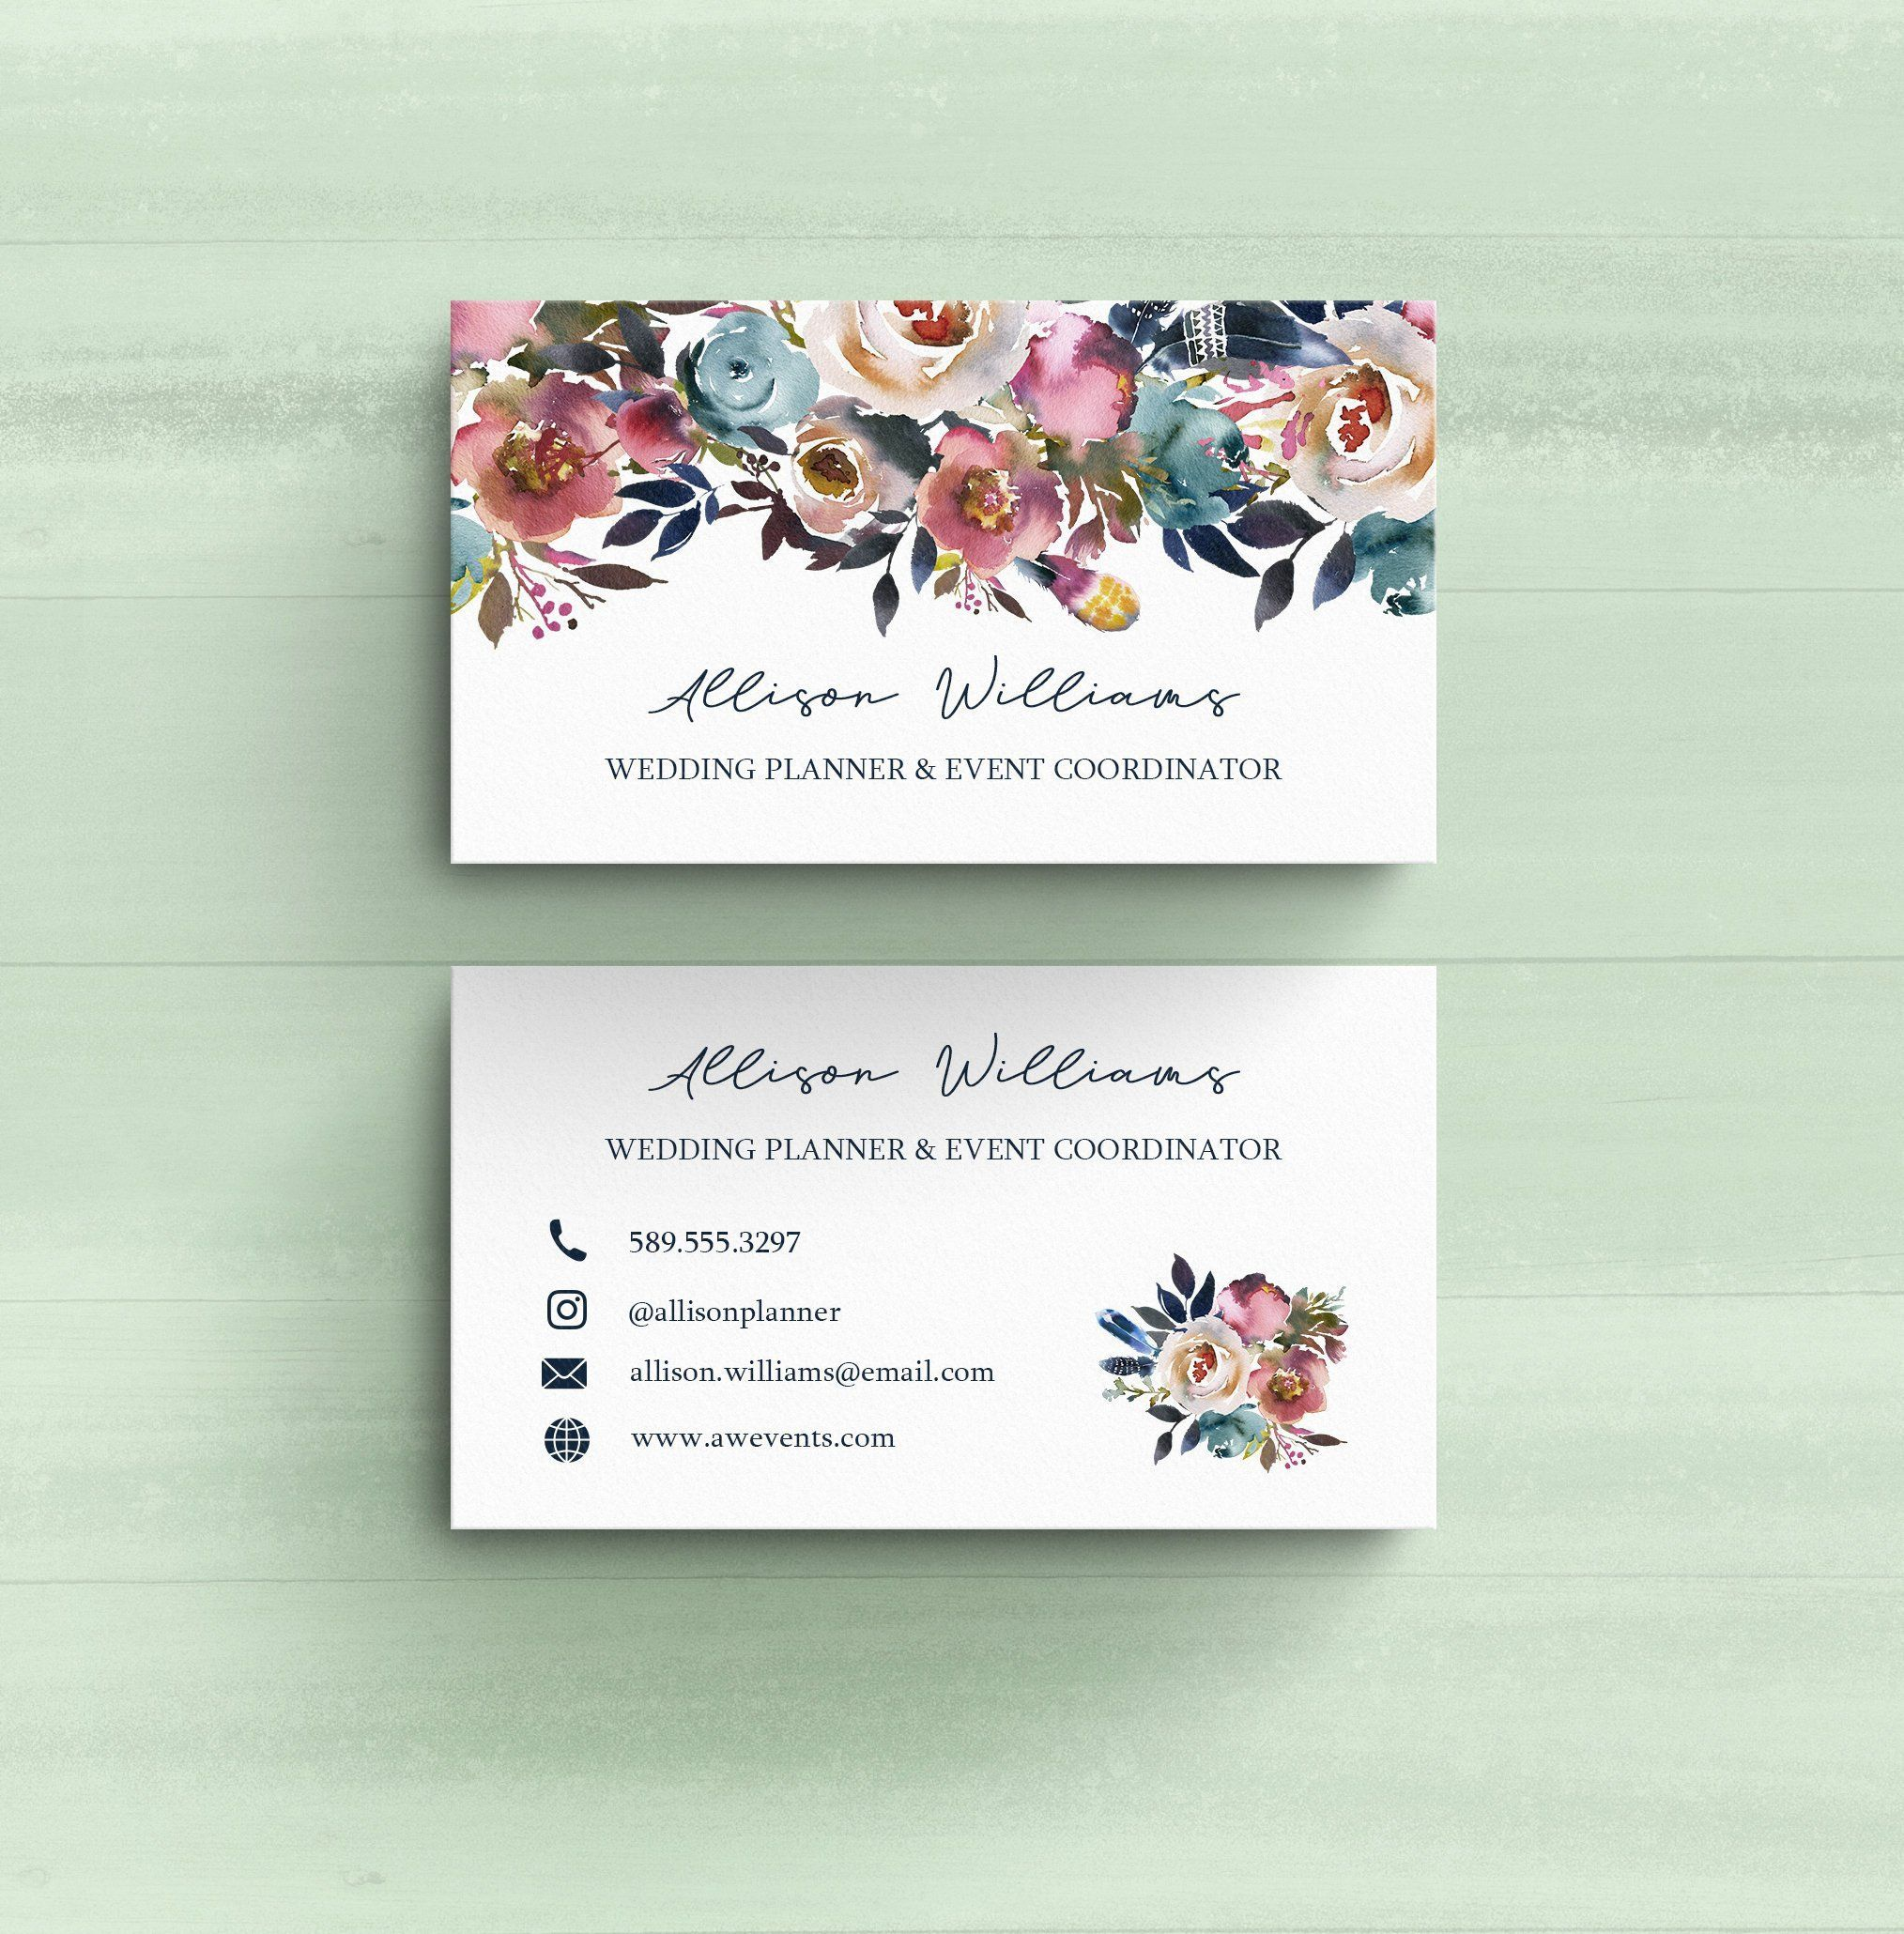 personalized floral business cards wedding planner event